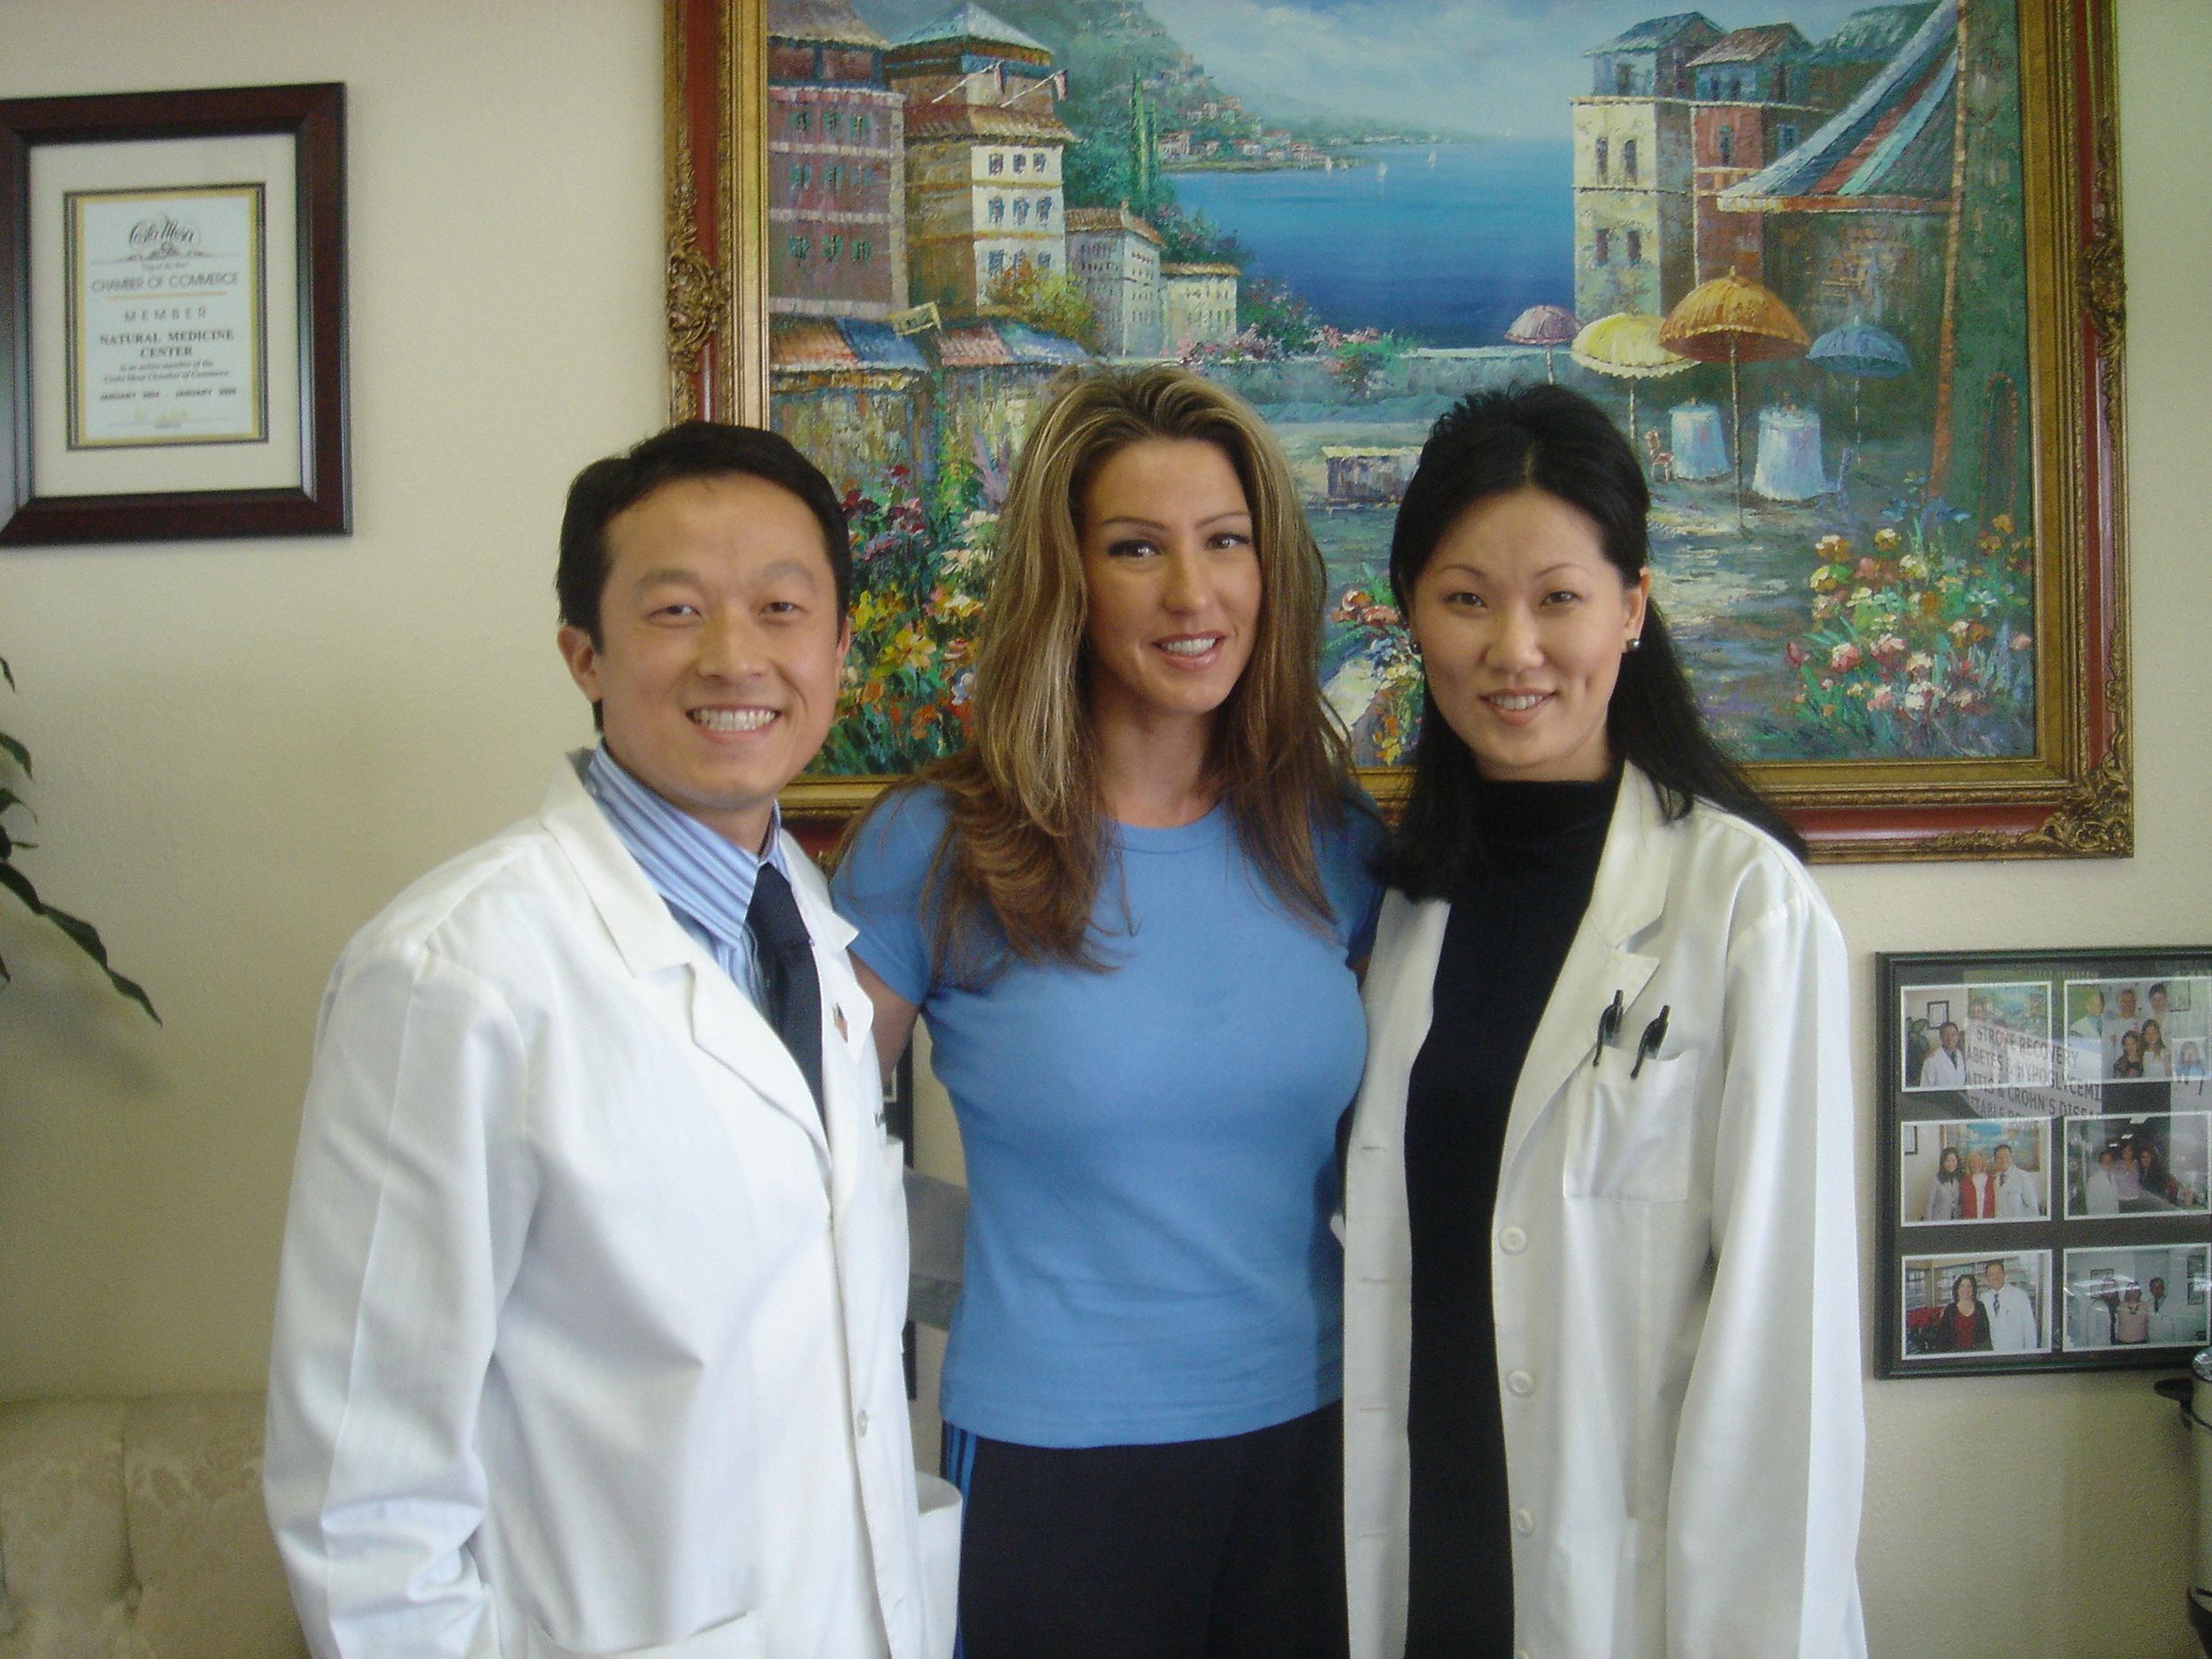 After the first acupuncture pain treatment, the patient said she felt a difference. From that time onward, the patient started to improve. She was able to continue with her daily routines and is able to even live a better quality life. In the process, the patient lost weight and re-gained her vitality.